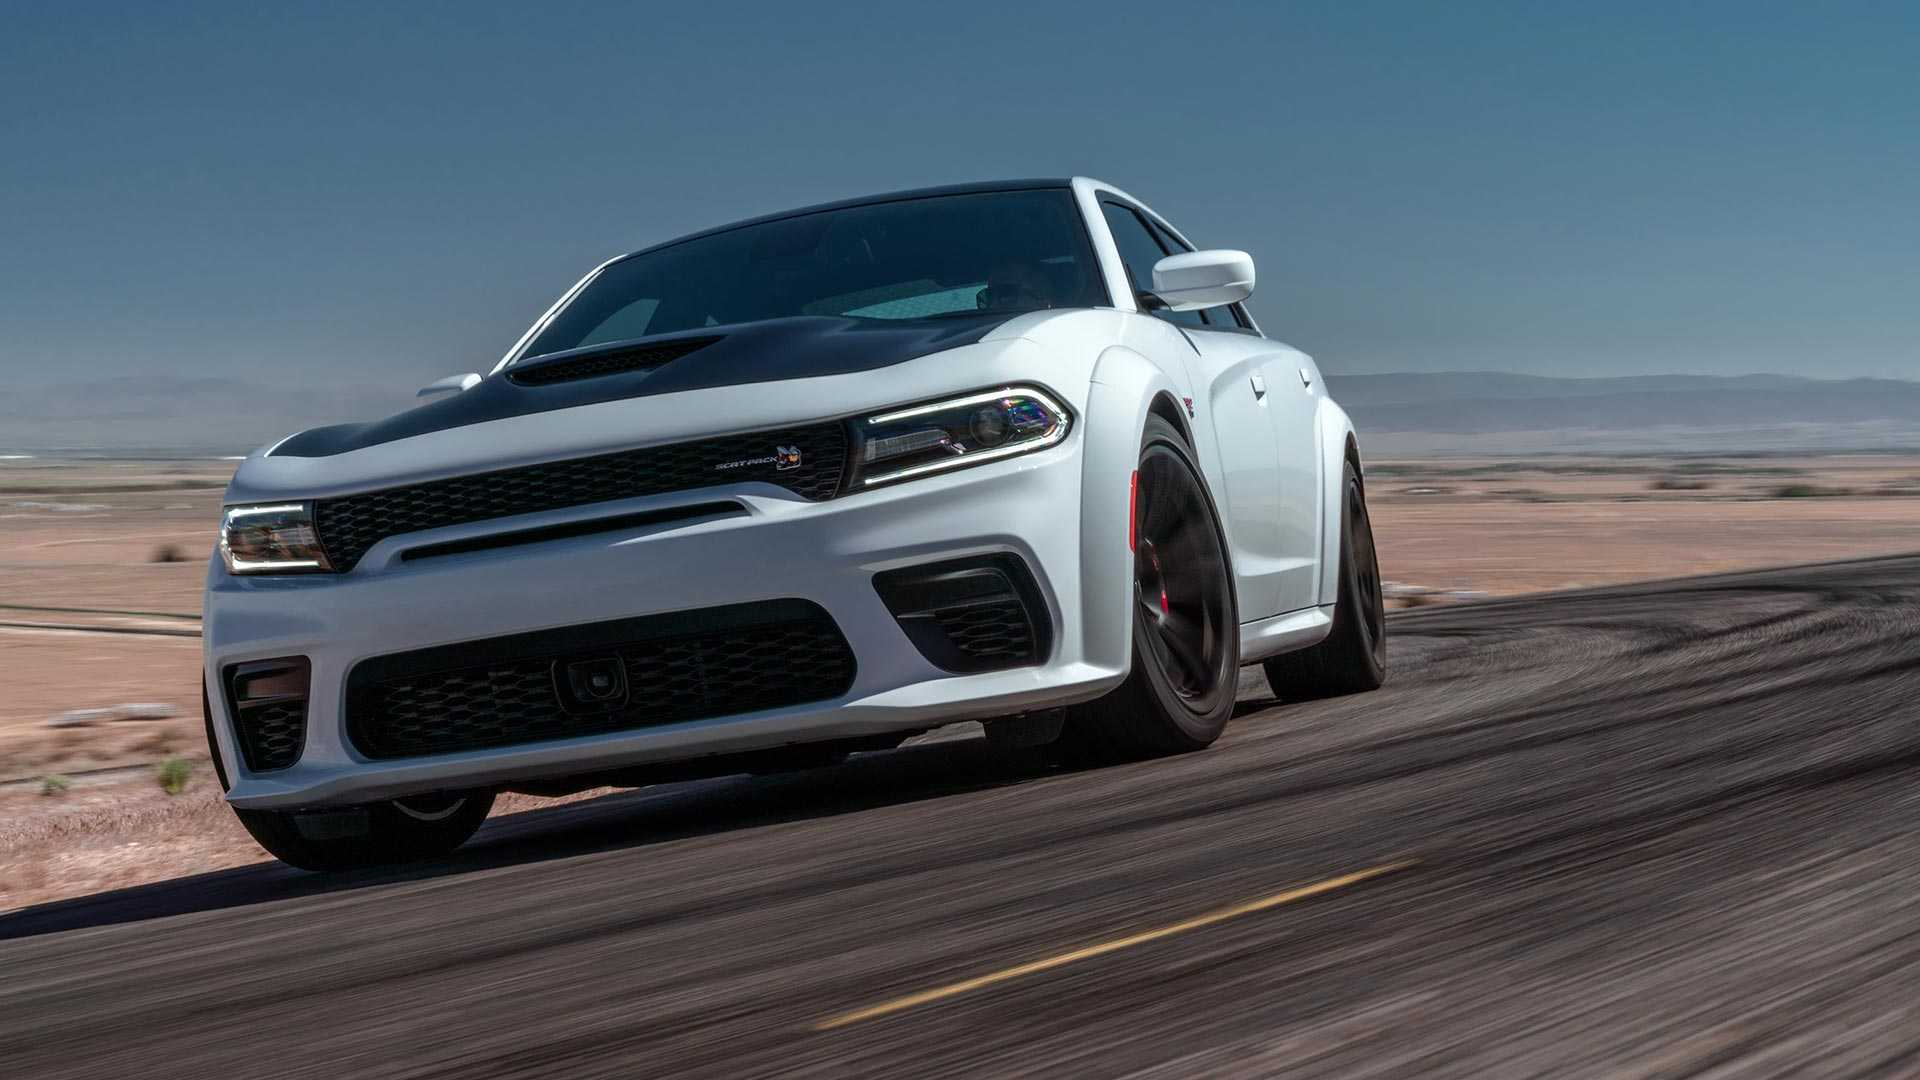 Dodge Charger Srt Hellcat Widebody 2020 Motor1 Com Fotos